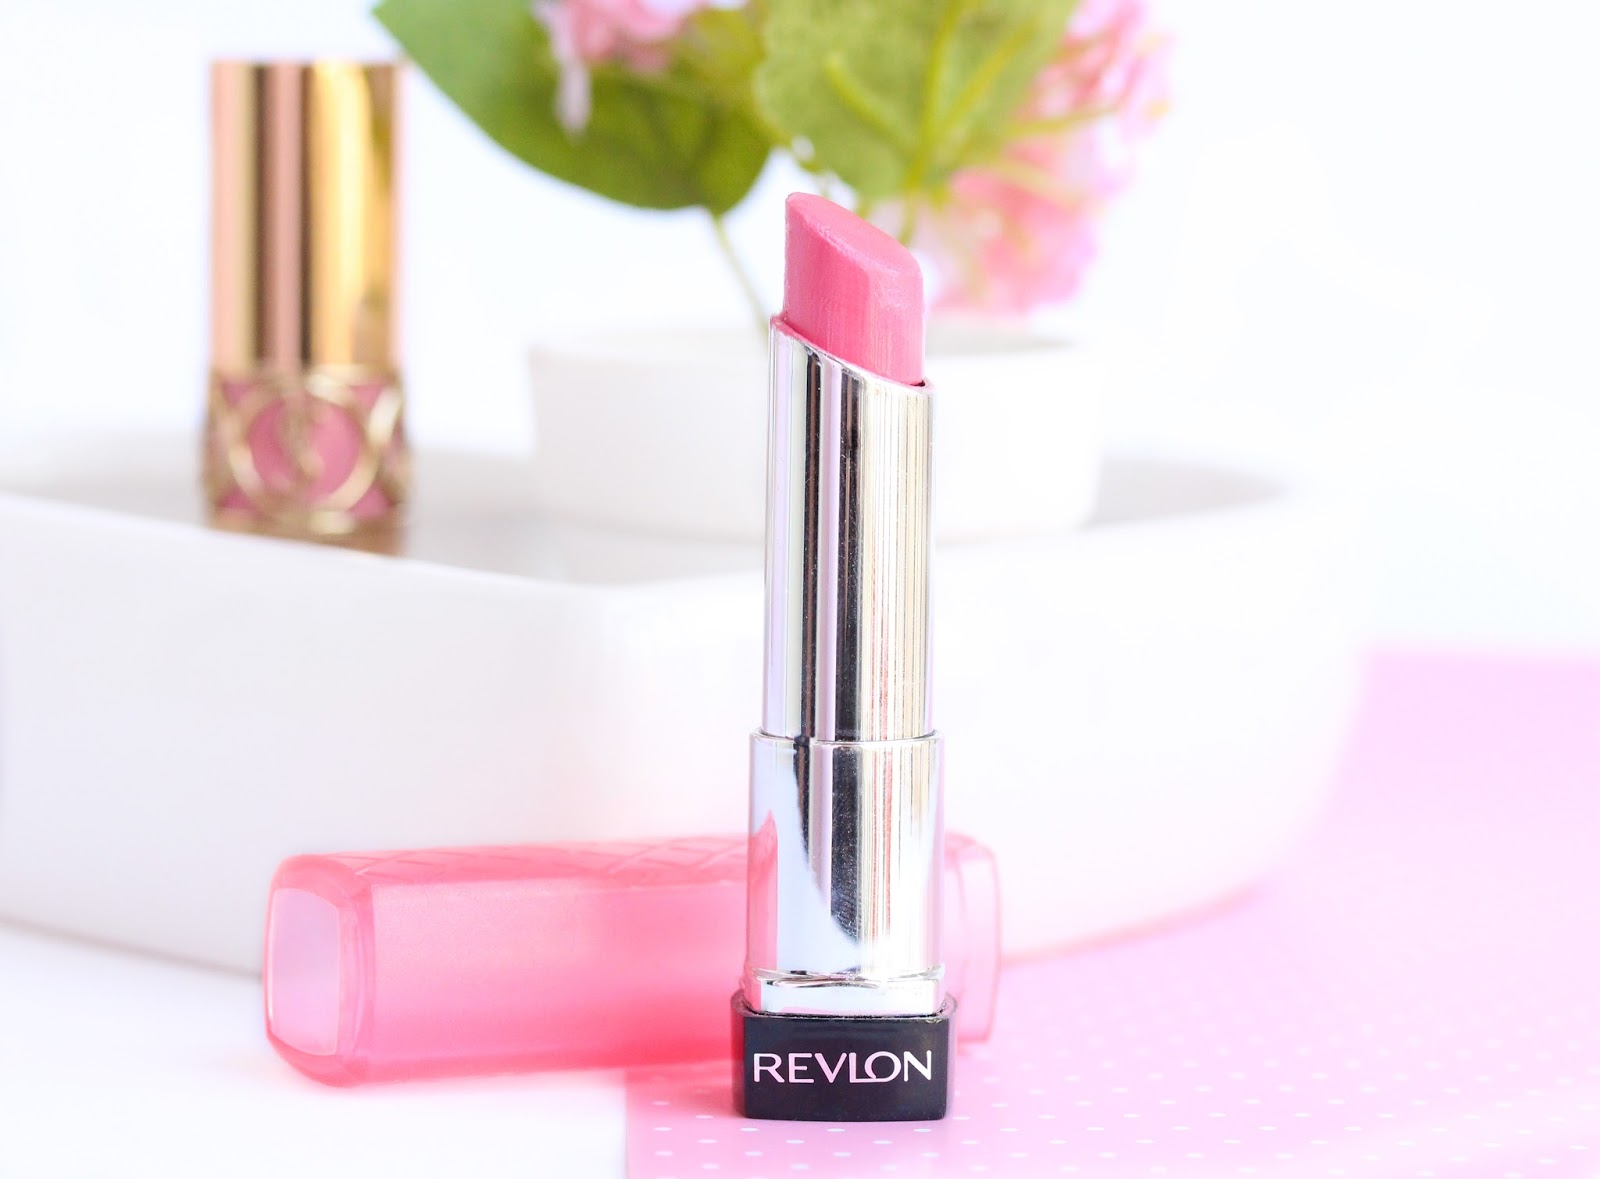 Revlon Lip Butter in Strawberry Shortcake